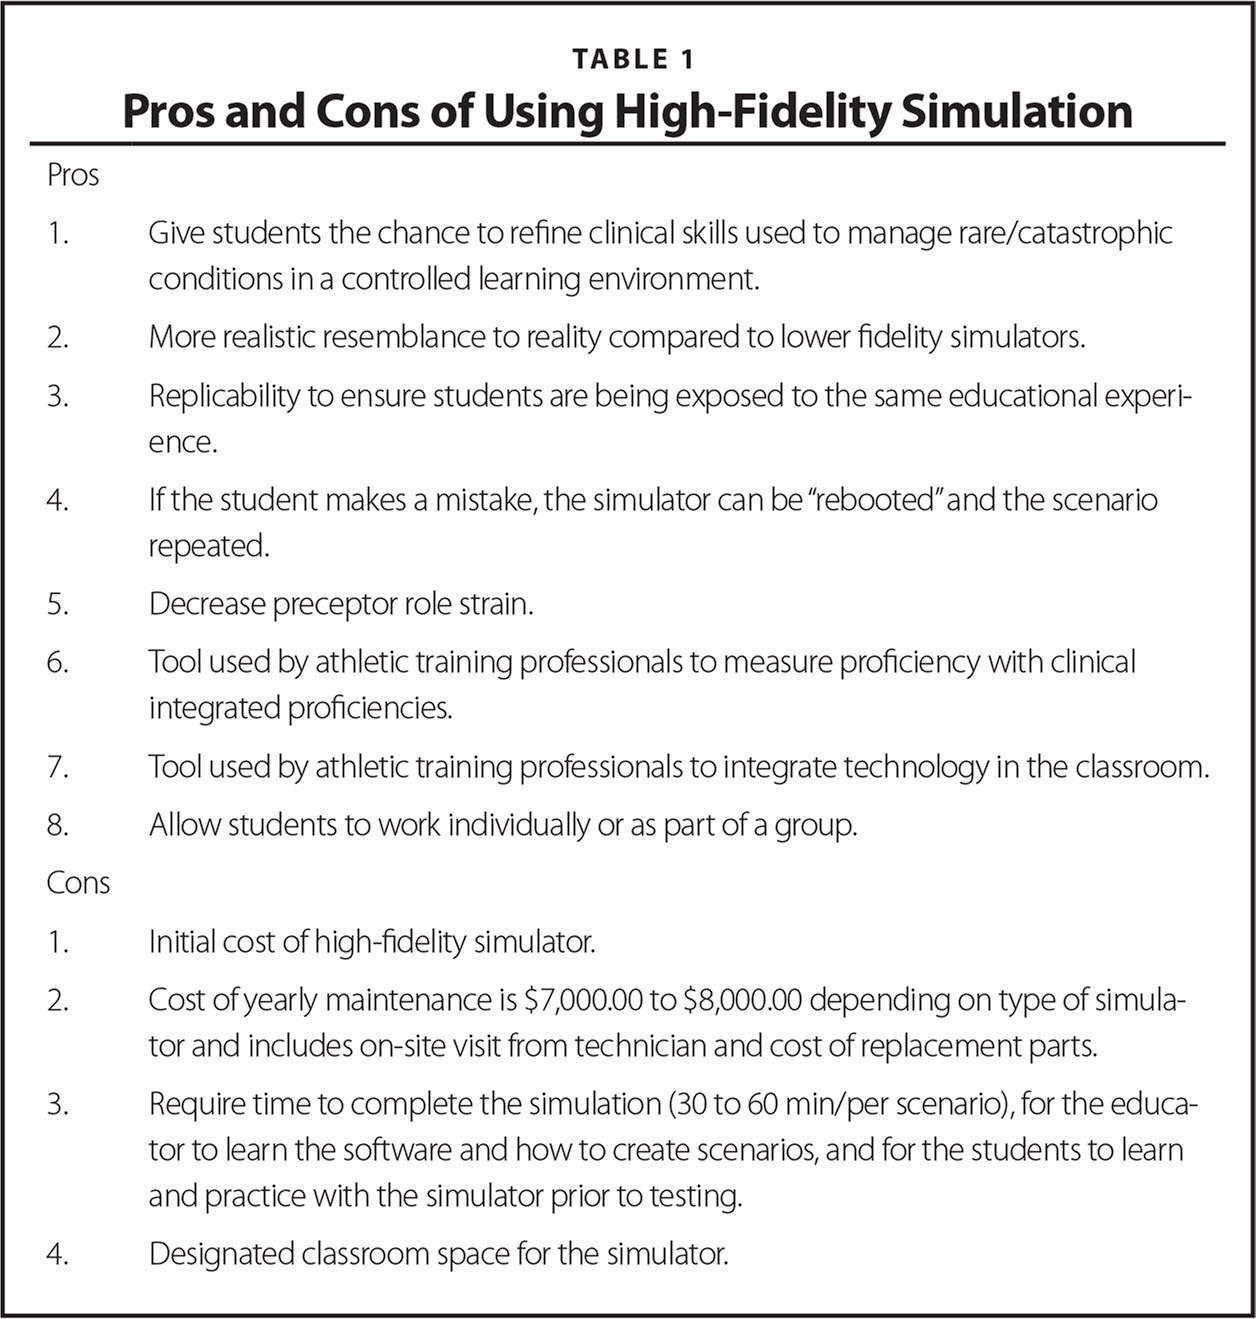 Pros and Cons of Using High-Fidelity Simulation